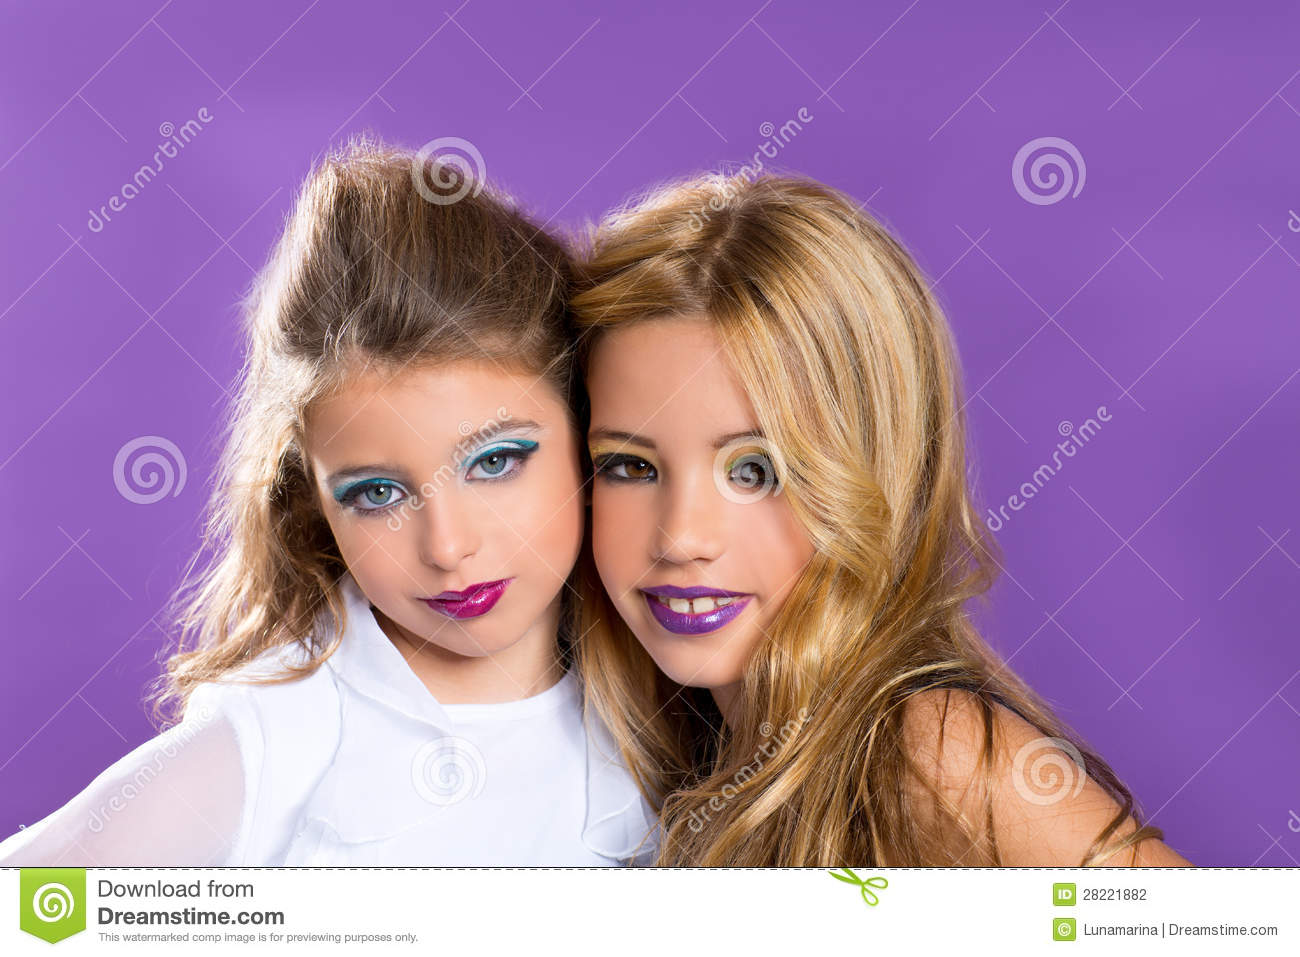 two friends fashiondoll kid girls with fashion purple